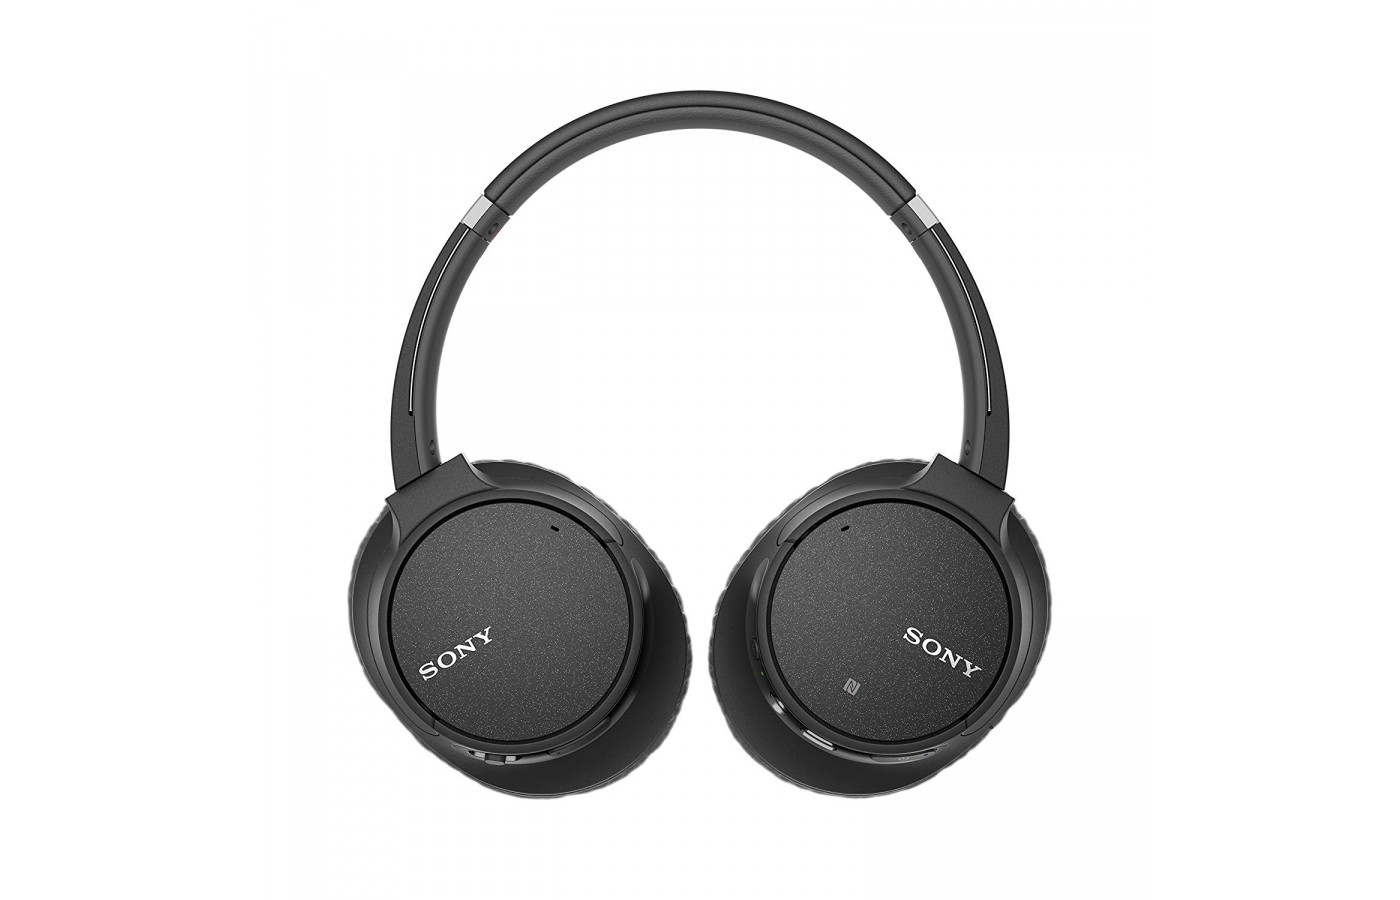 The Sony WH-CH700N offer a 35 hour battery life for longer listening and less charge time.